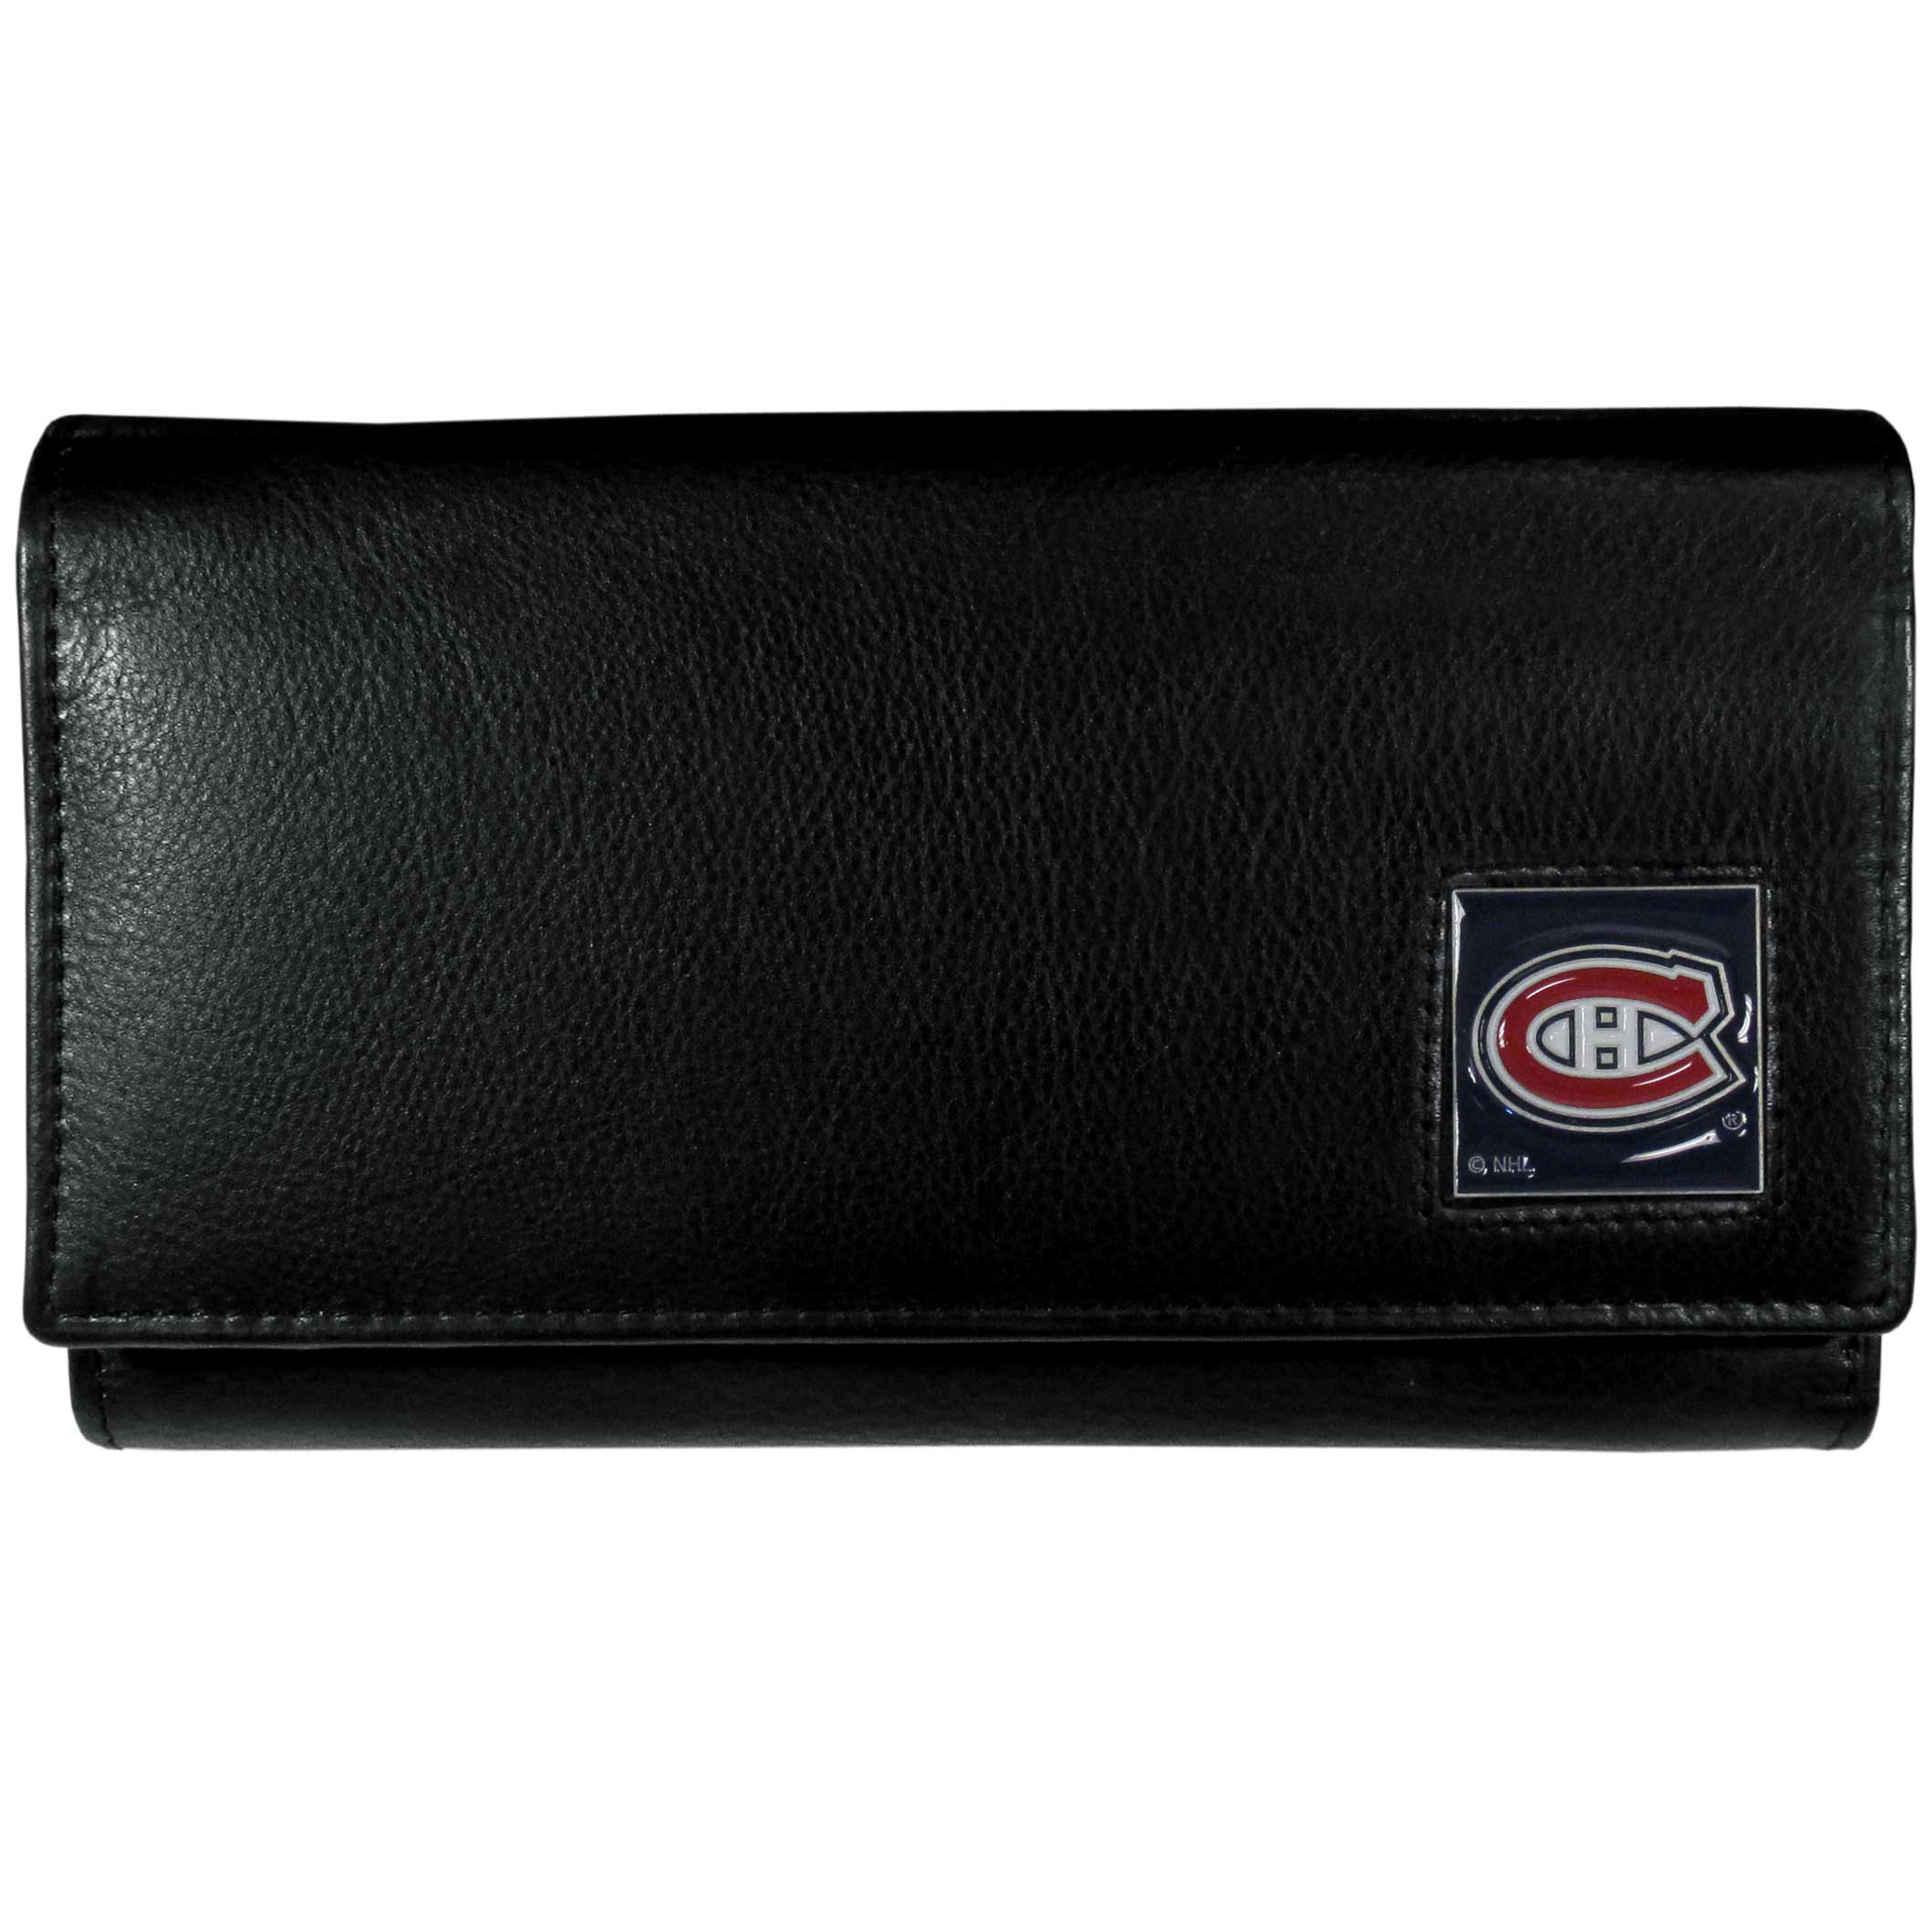 Montreal Canadiens® Leather Women's Wallet - This genuine leather women's pocketbook features 9 credit card slots, a windowed ID slot, spacious front pocket, inner pocket and zippered coin pocket. The front of the pocketbook has a hand painted metal square with the Montreal Canadiens® primary logo.